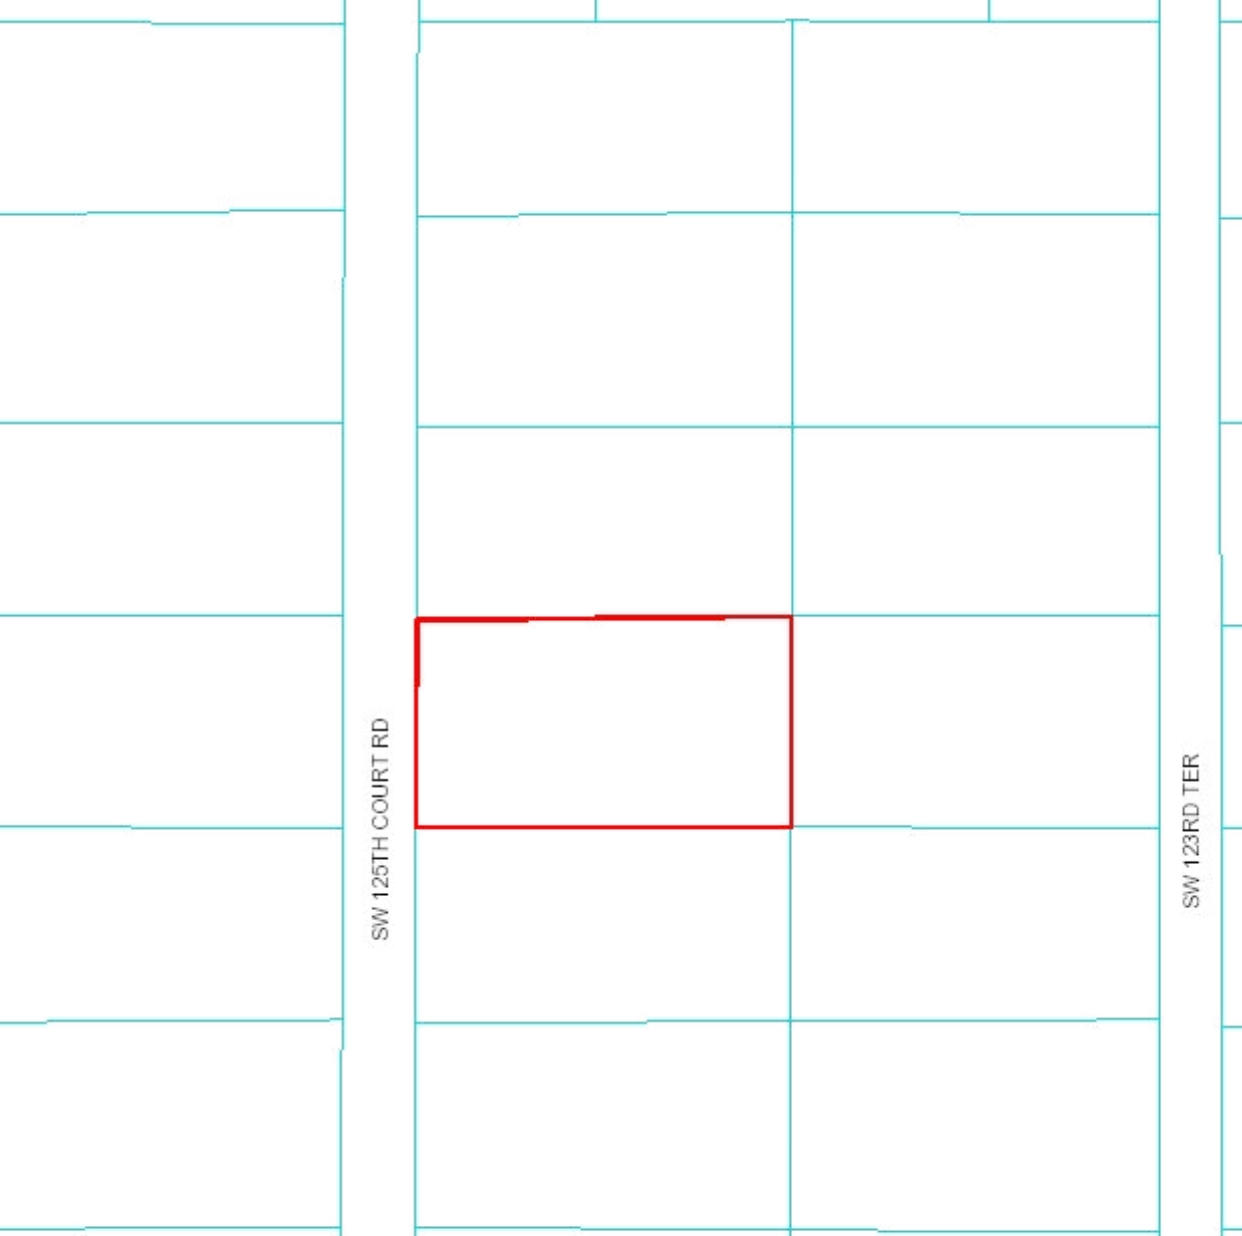 Block 50 125th Court Road Lot 9, Ocala, Florida 34481, ,C,Single family,125th Court,RX-10442422